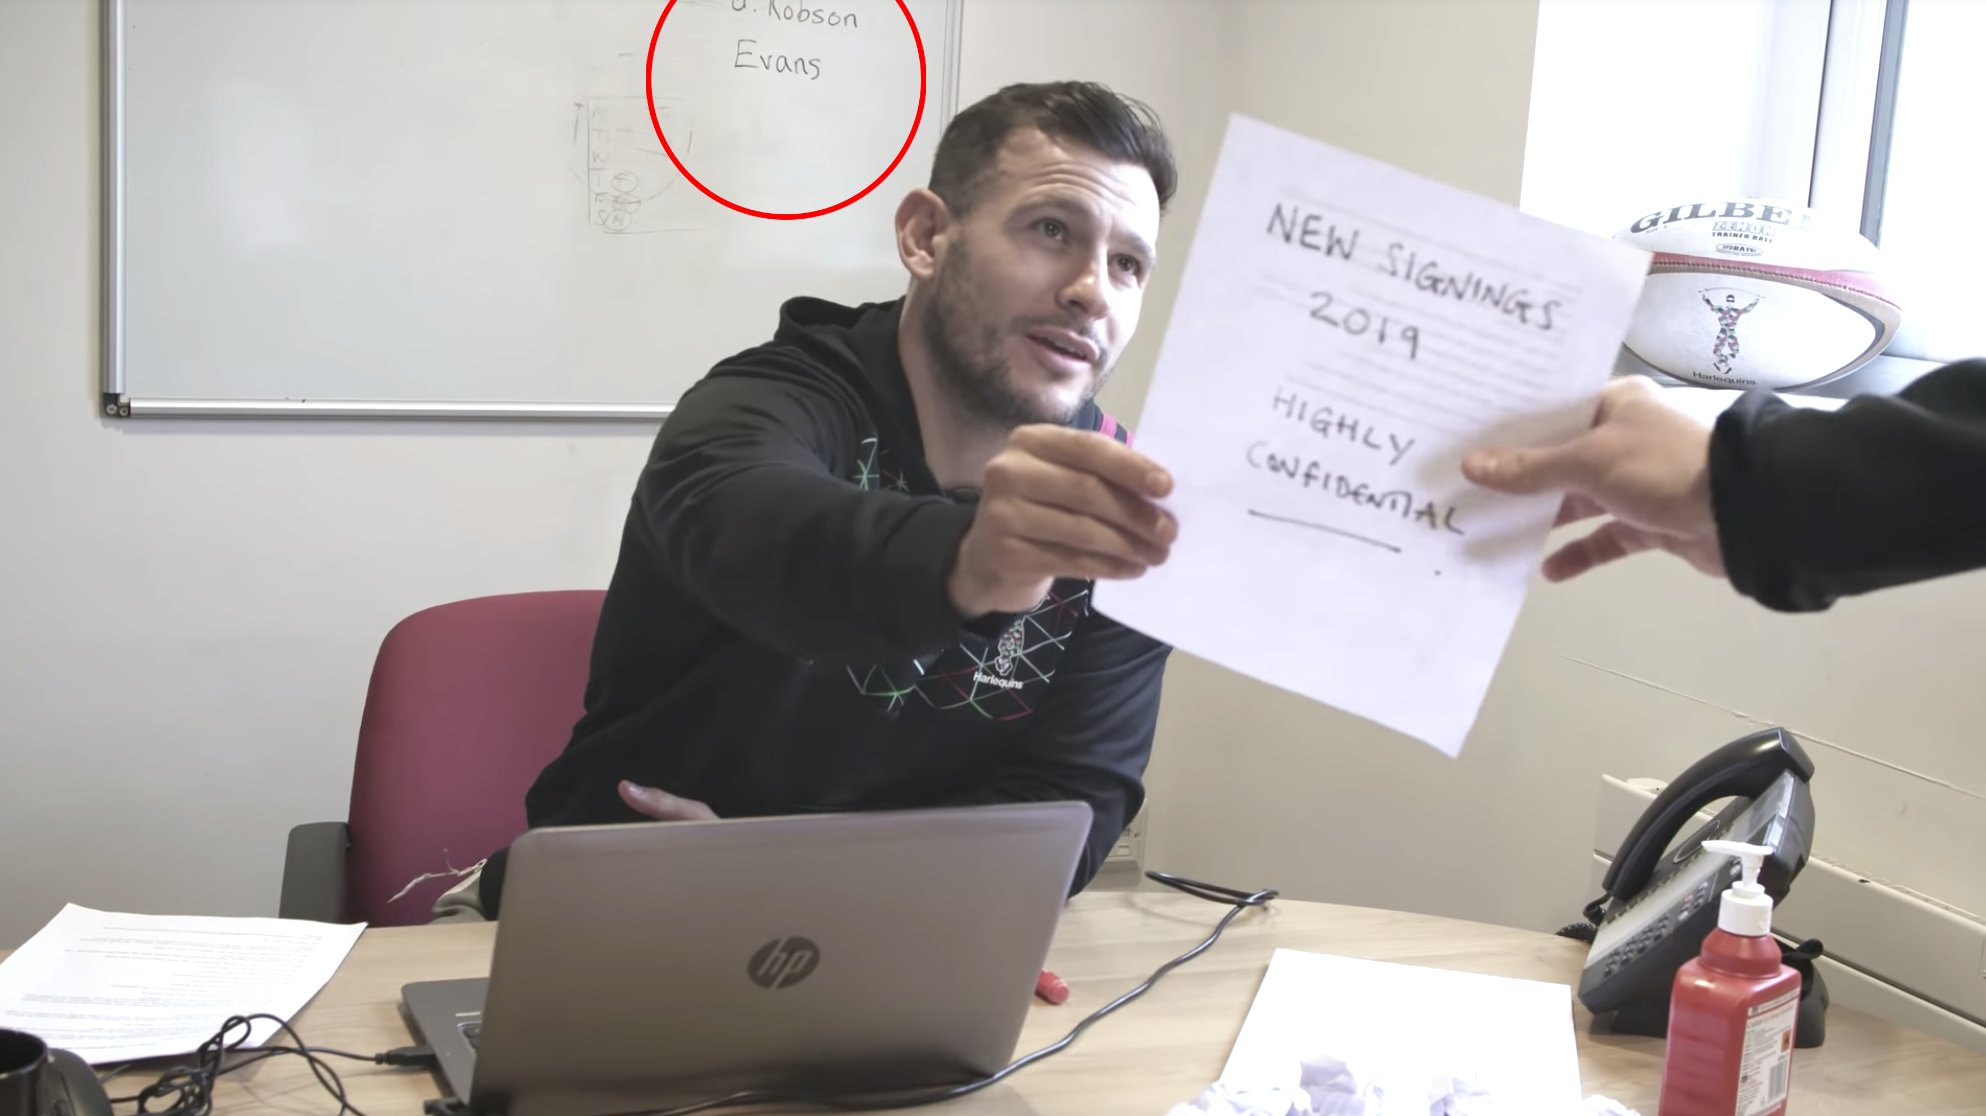 WATCH: Harlequins tease new signings, including an international, in new video